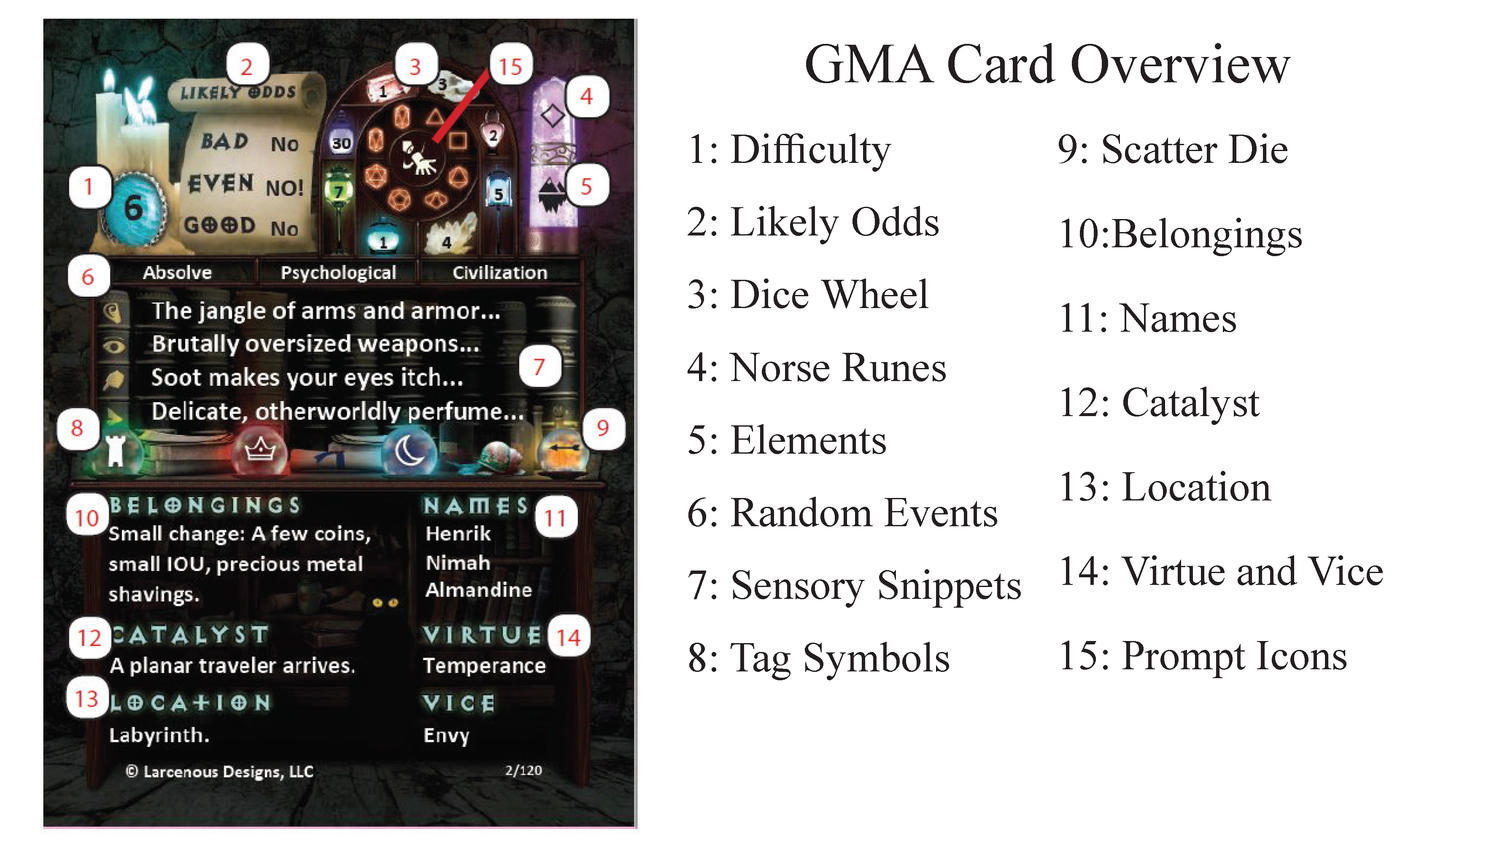 Card Overview